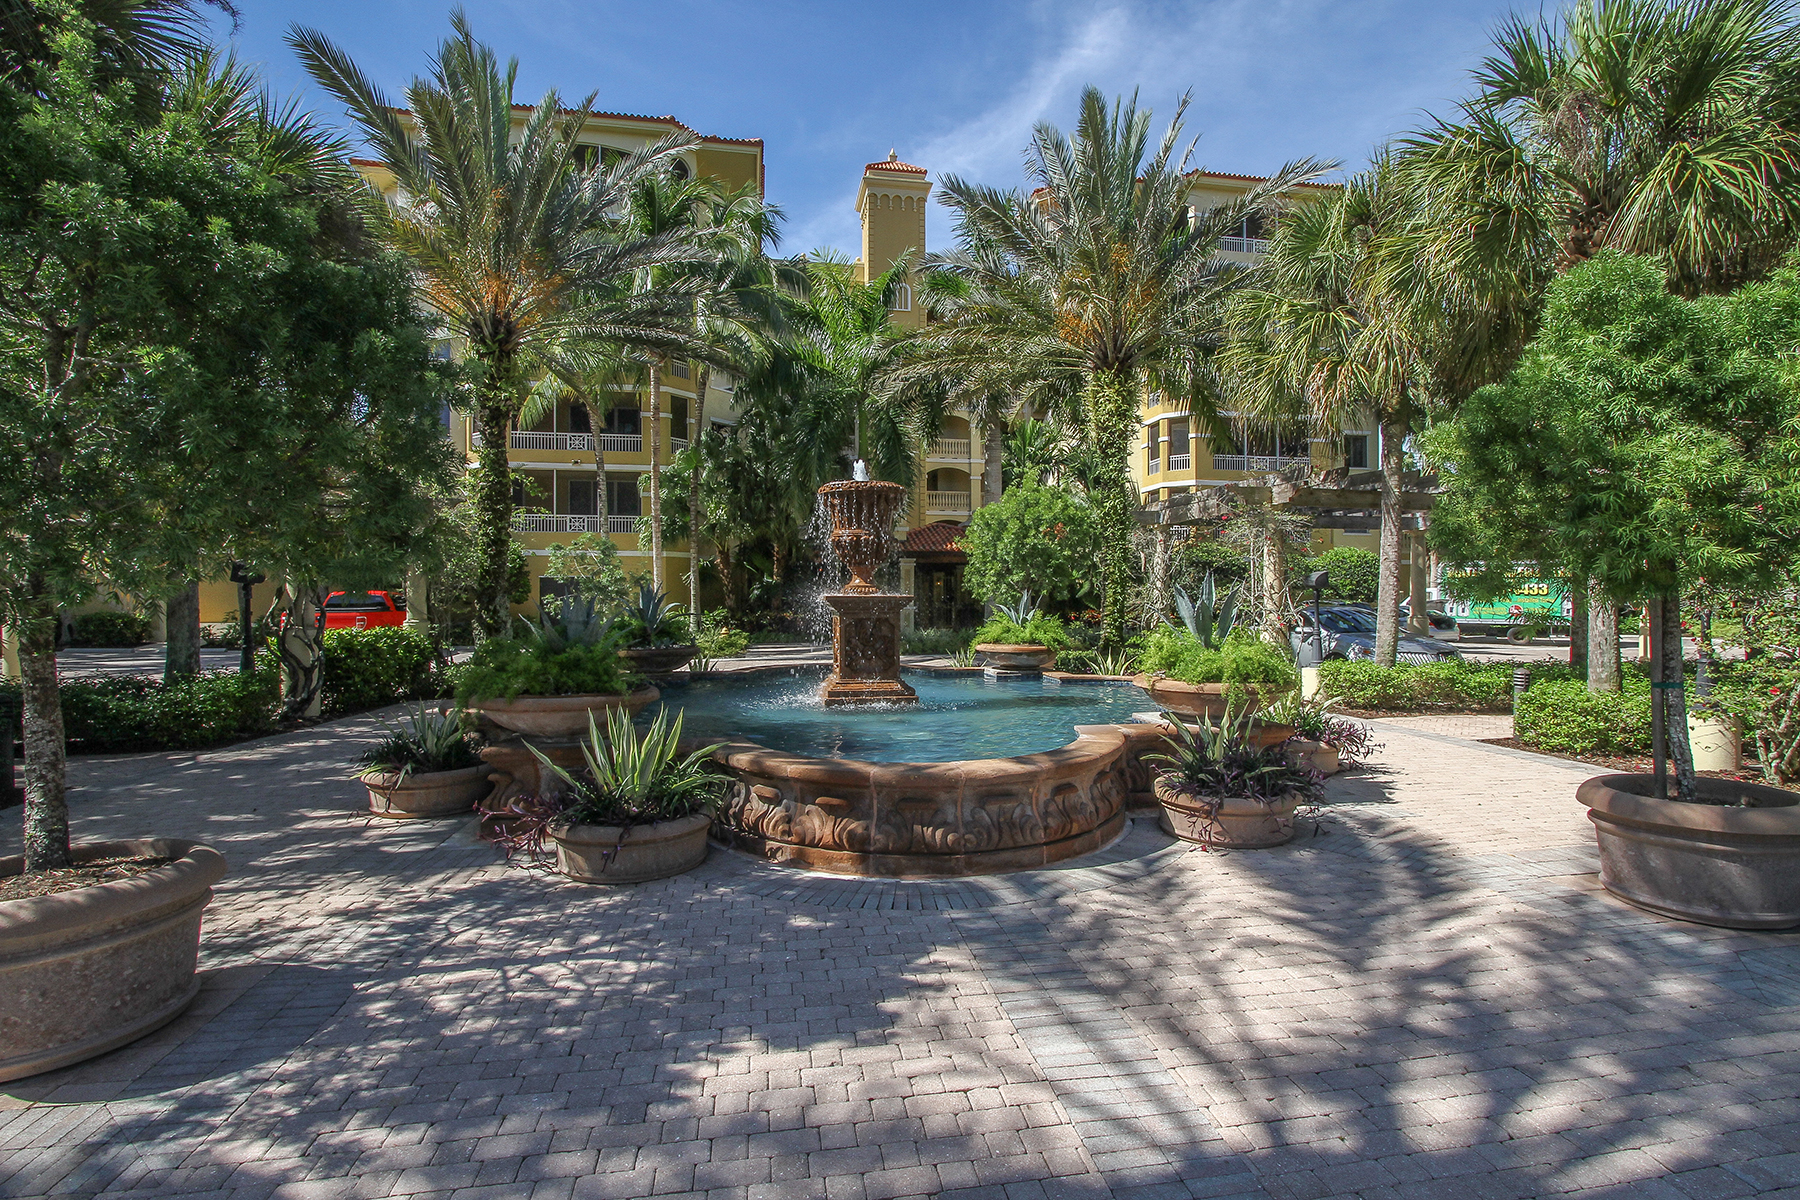 Condo / Townhome / Villa for Rent at 2738 Tiburon Blvd E B-403 Naples, Florida 34109 United States